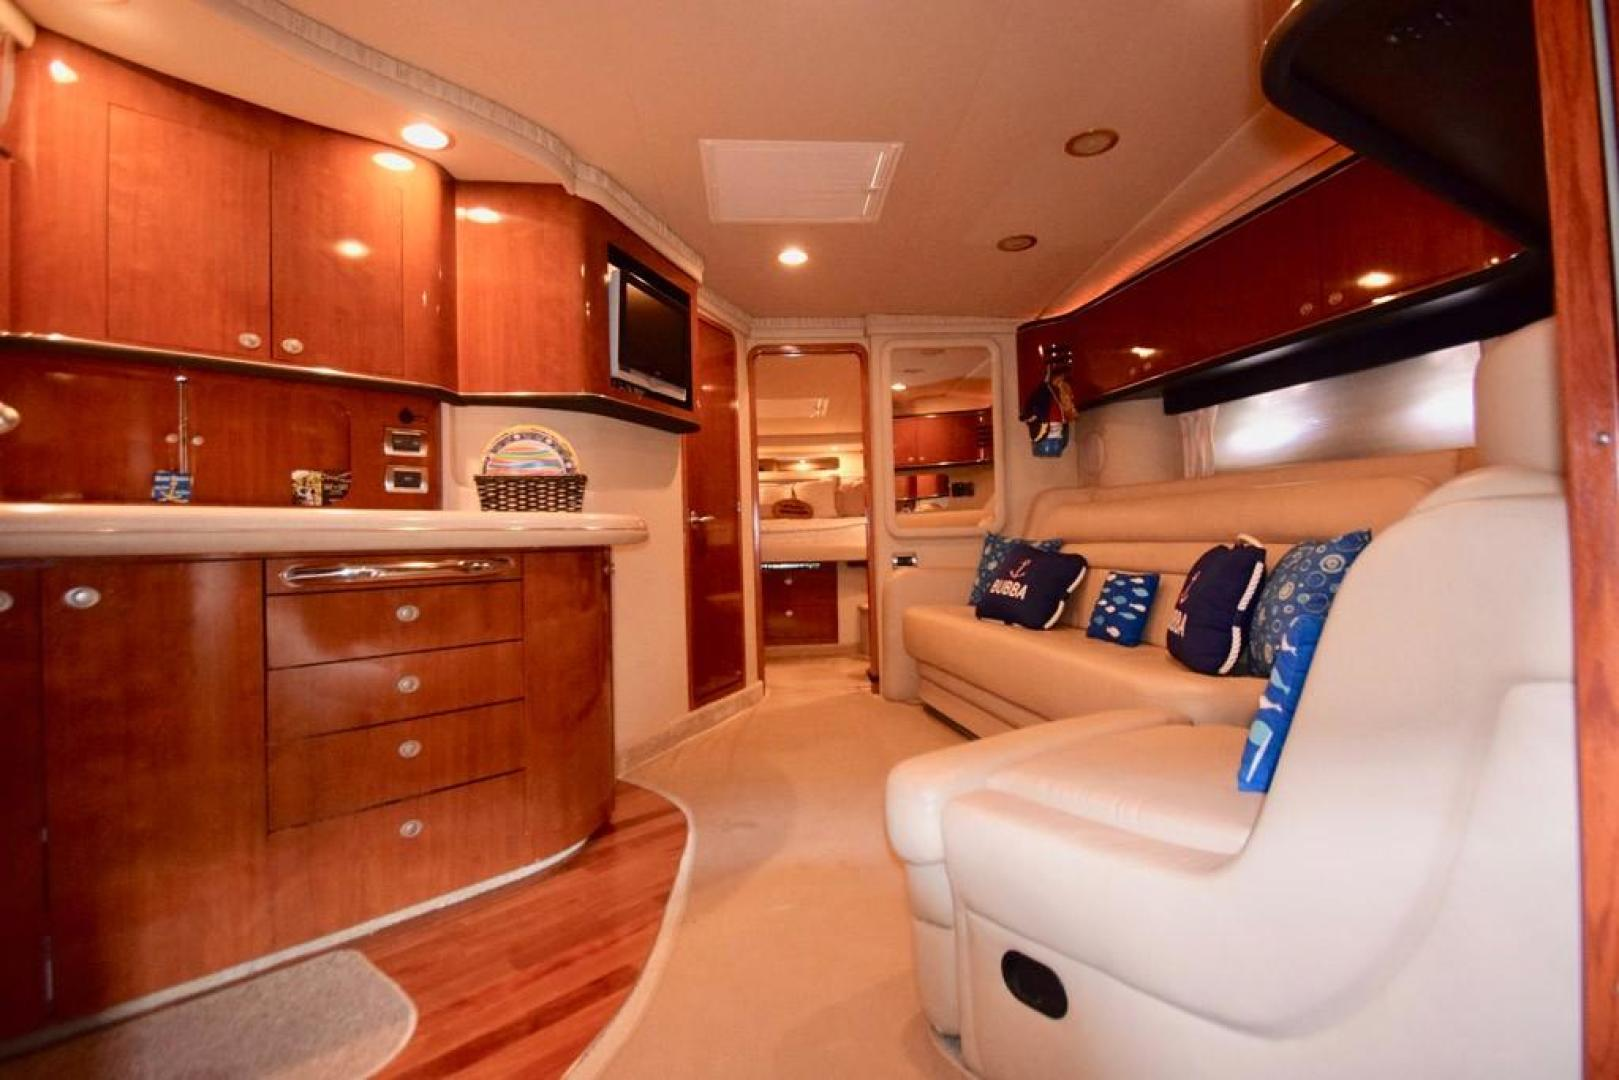 Sea Ray-Sundancer 2004-Bubba The Final Version? Dania Beach-Florida-United States-Main Salon with View into Main Stateroom-368972 | Thumbnail